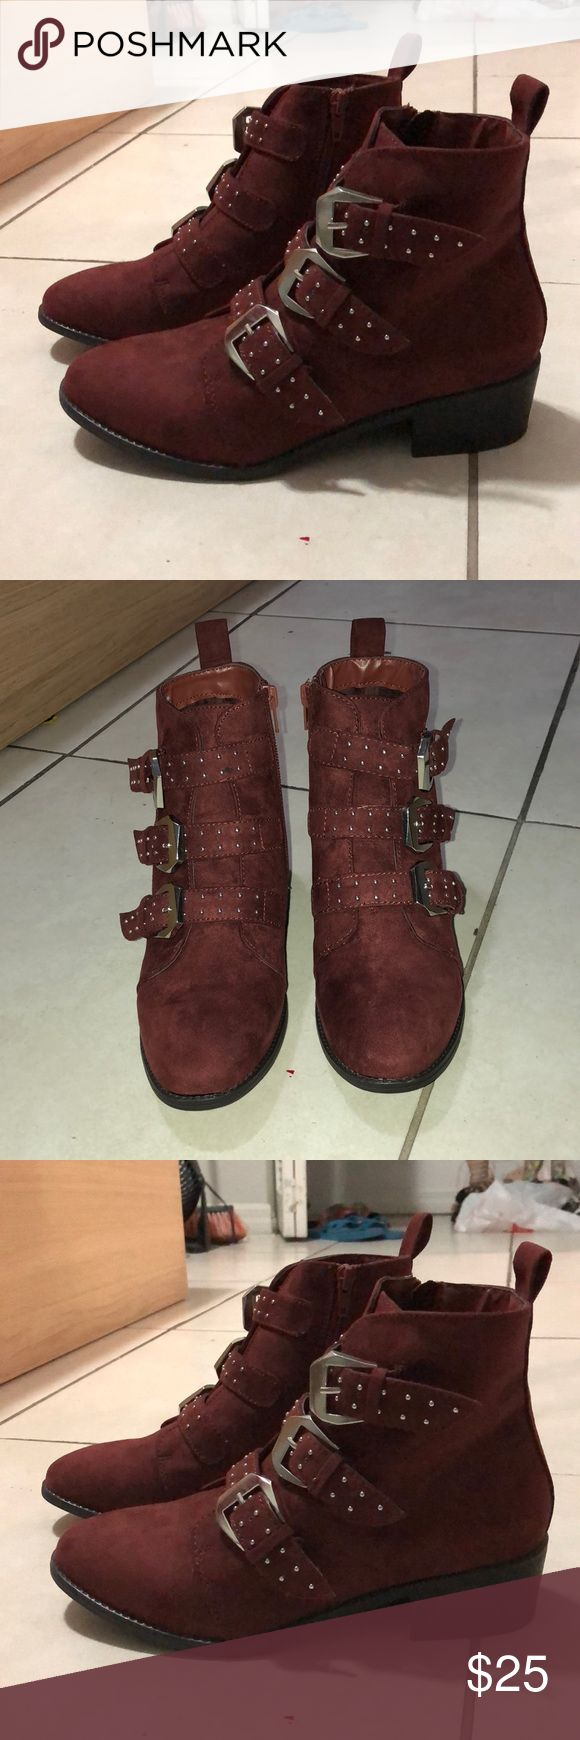 NWT New Look Ankle Boots Gorgeous ankle boots! Never worn. Very stylish! Size 7 Women's US, UK 5. New Look Shoes Ankle Boots & Booties